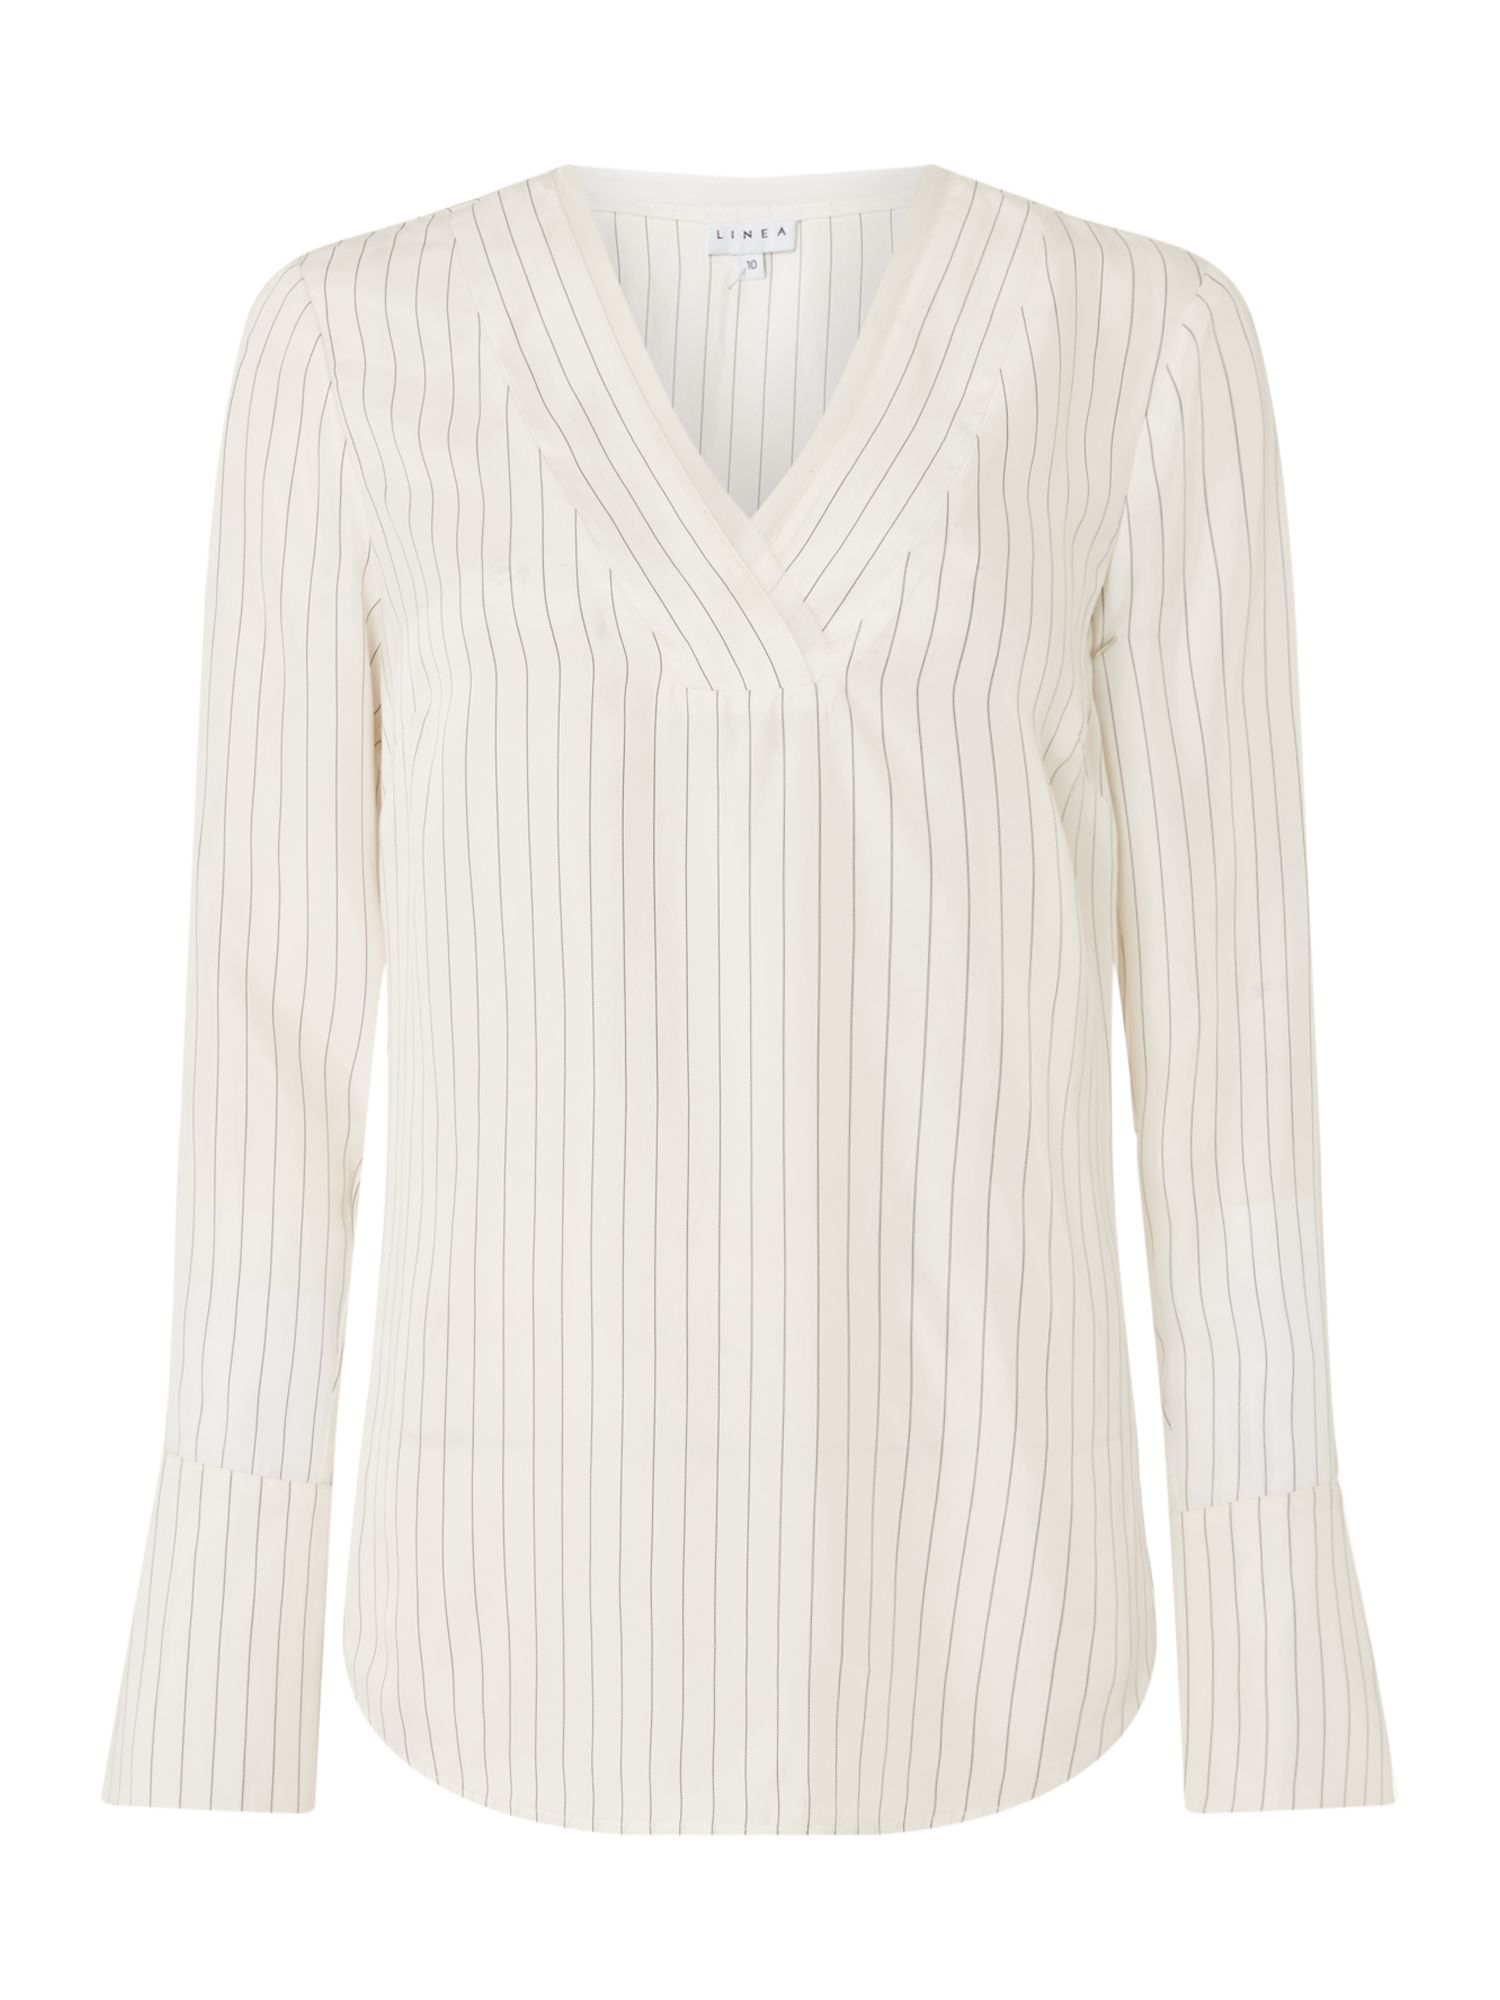 Linea Bertie v neck stripe blouse, White